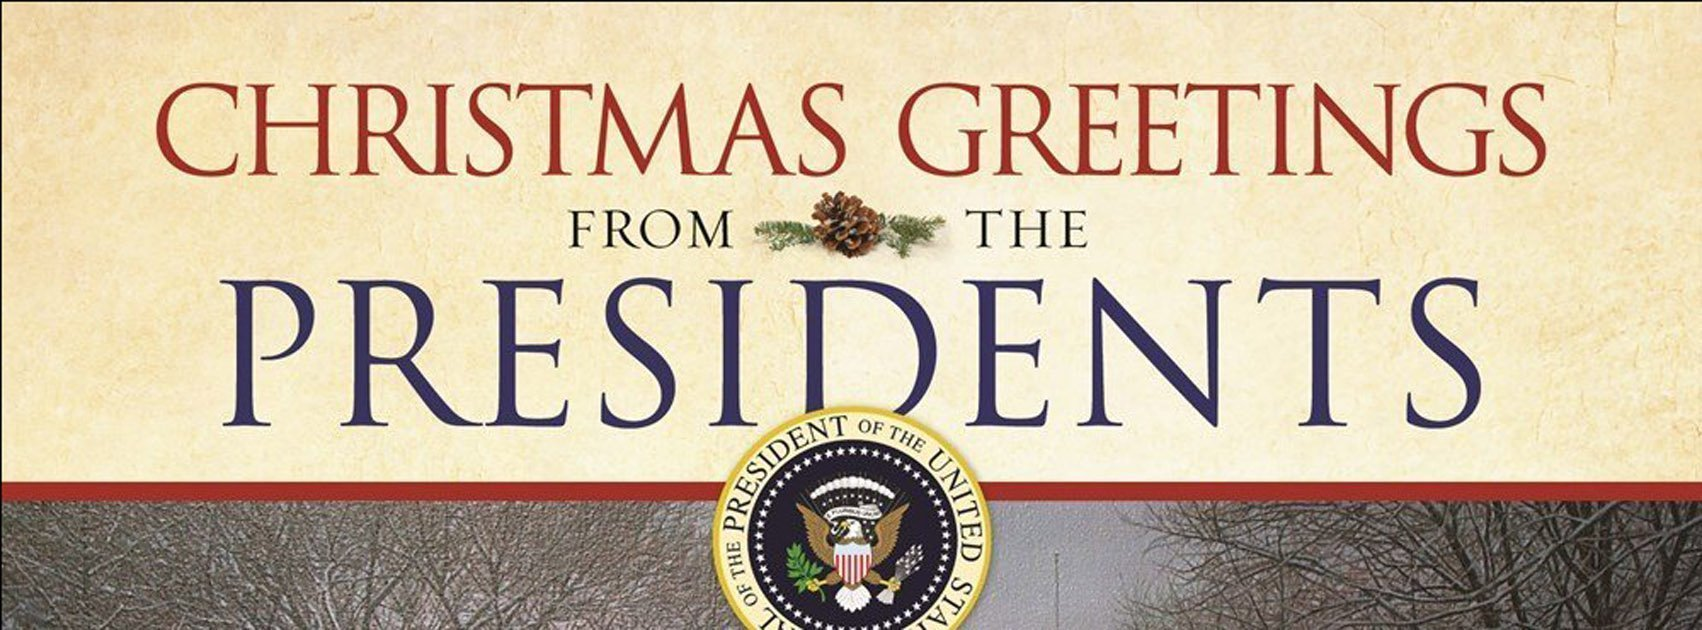 """Christmas Greetings from The Presidents"" Makes a Great Gift"